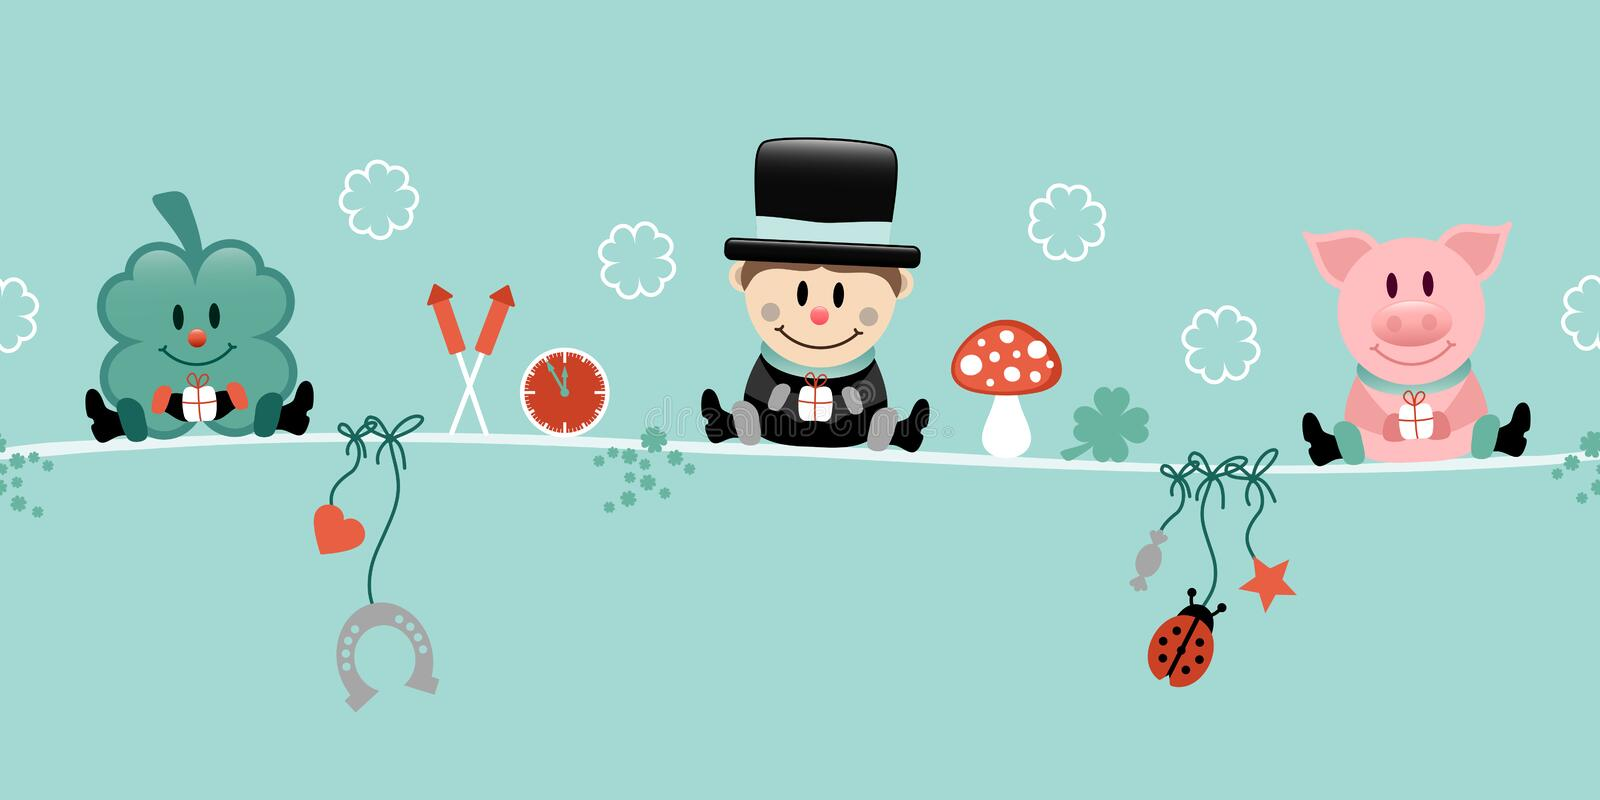 Shamrock Chimney Sweep And Pig Hanging Icons New Years Eve Turquoise 向量例证